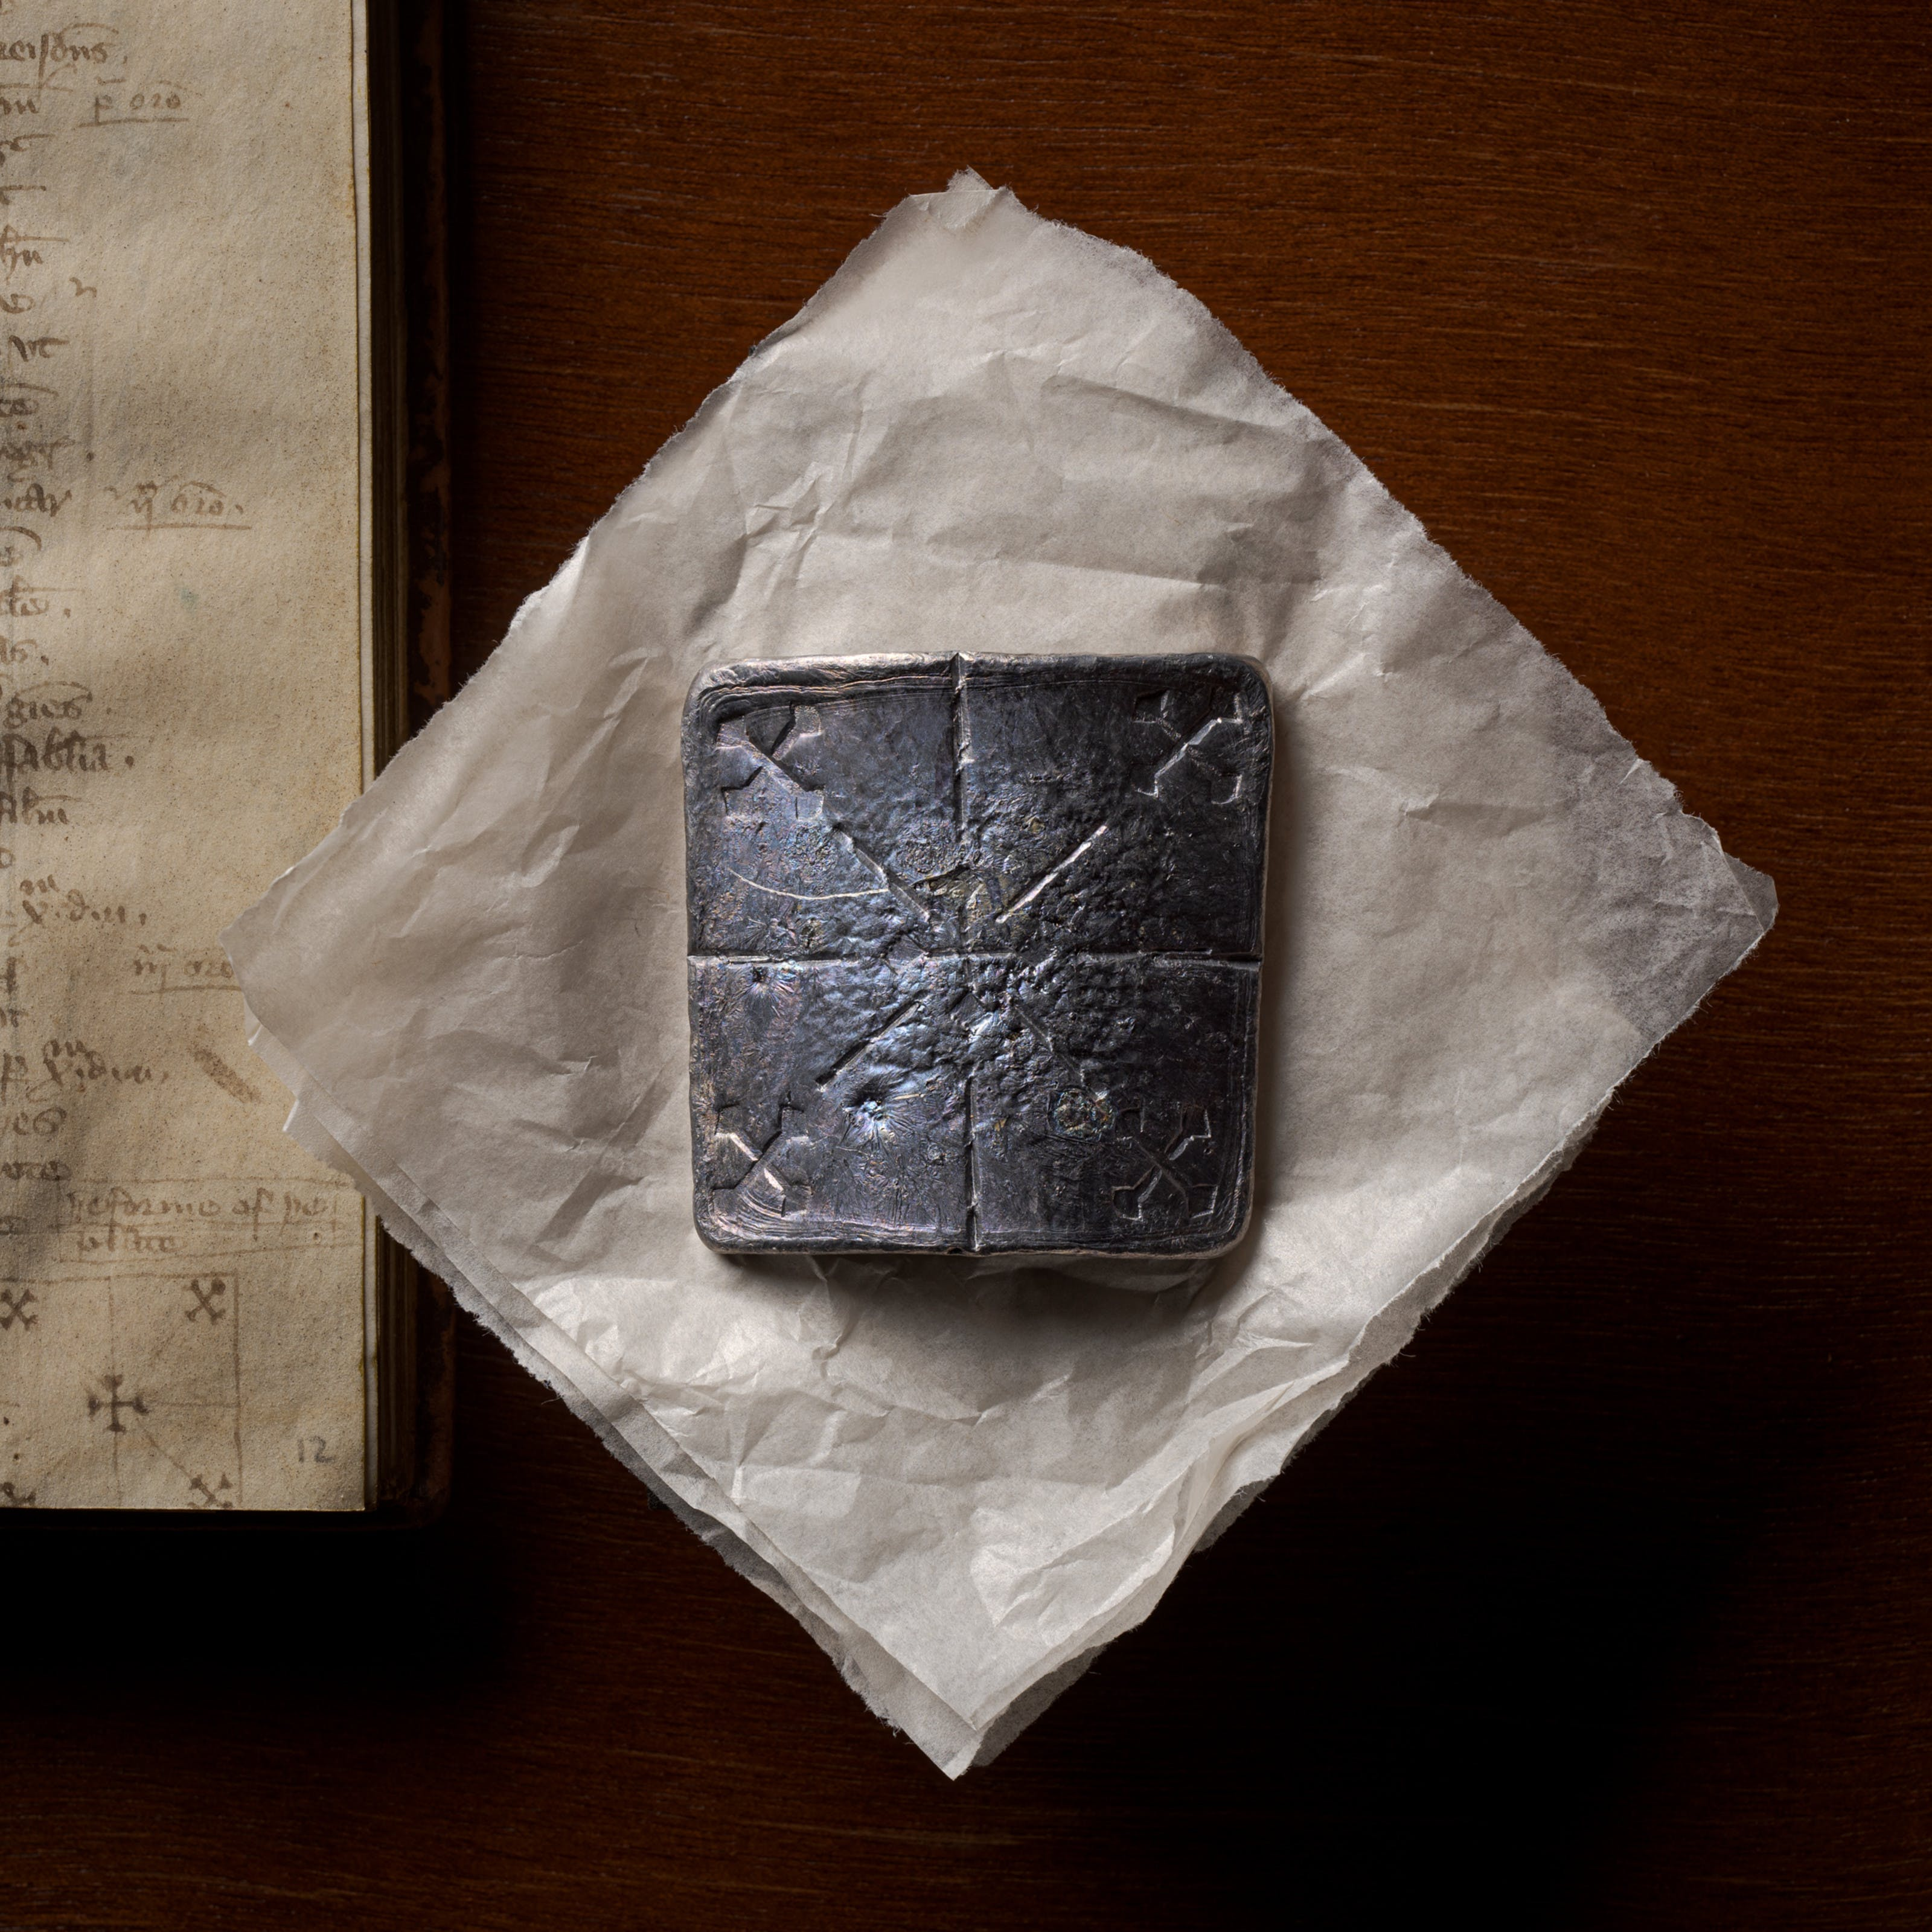 Photograph of a curved lead healing plate about ten centimetres square, sitting flat on a piece of conservation paper.  Below the lead plate, to the left, is the manuscript from which the original instructions to make the plate can be found.  The lead plate has been inscribed with 5 crosses; one diagonal cross in each corner with lines leading to a central, right-way-up, cross.